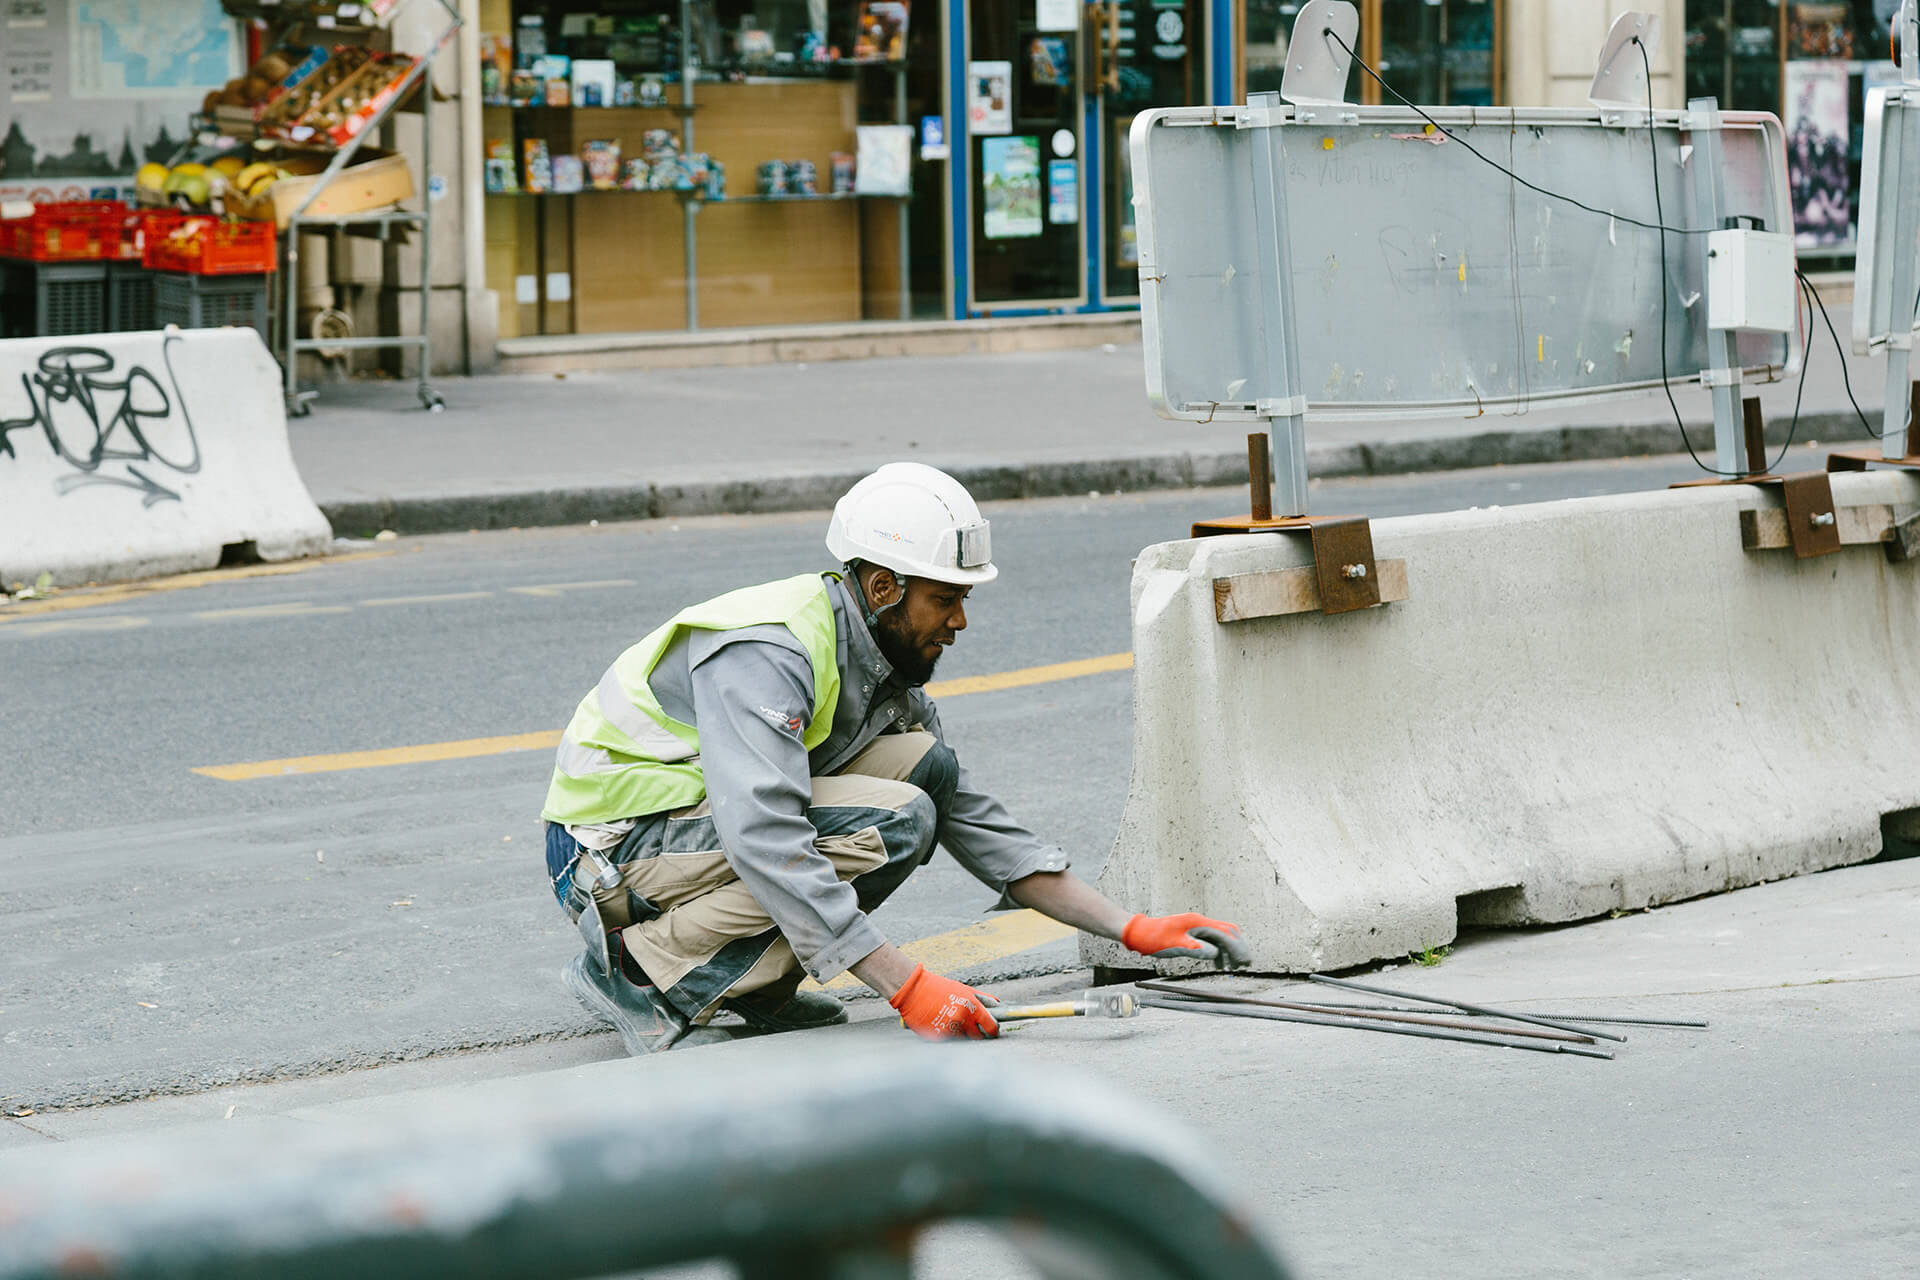 Occupational Noise Exposure Among Road Construction Workers